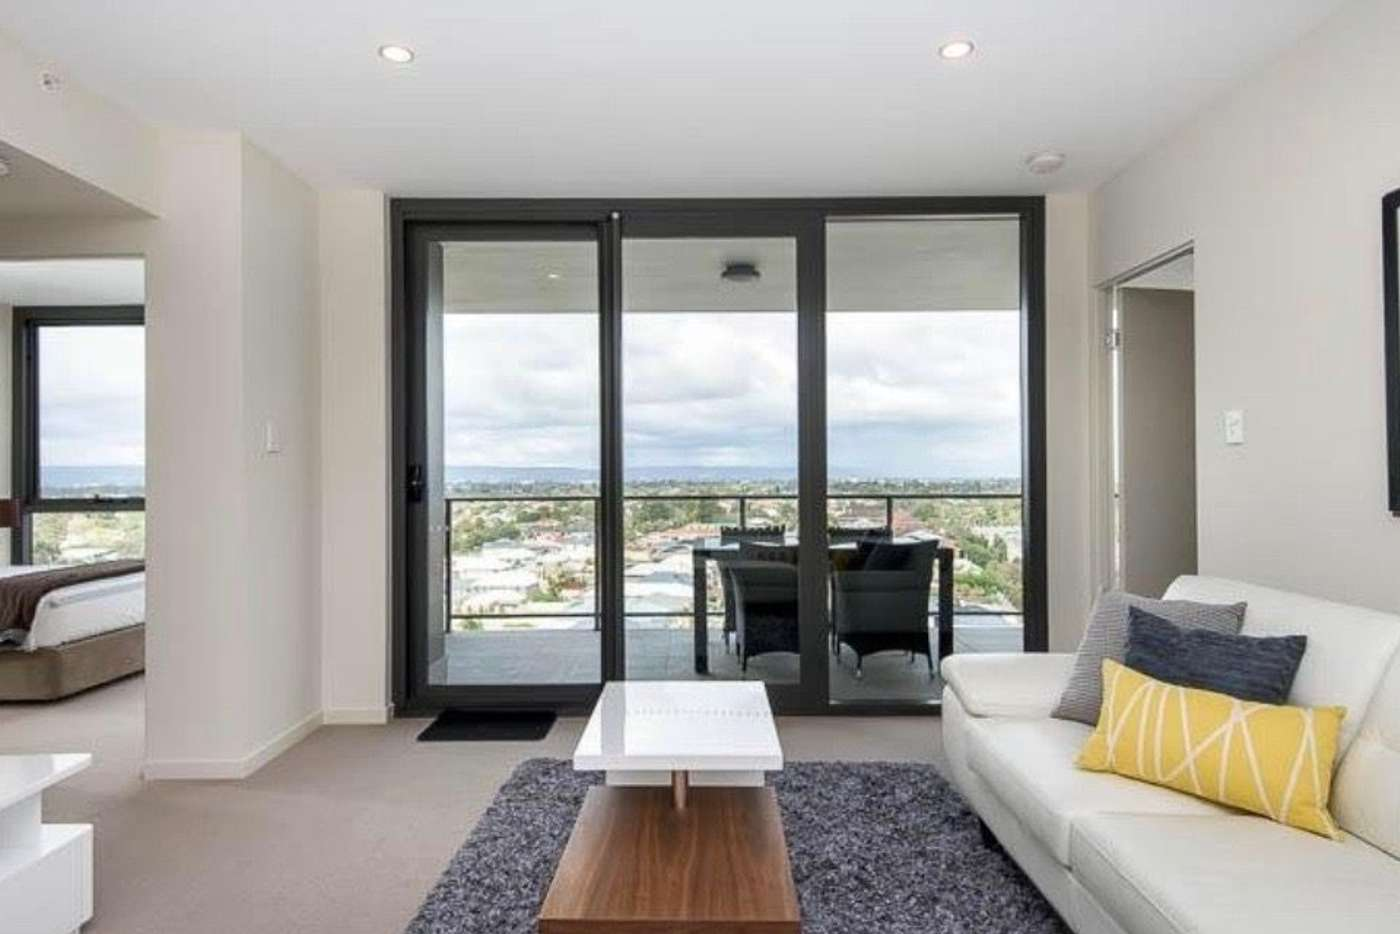 Main view of Homely apartment listing, 155/3 Homelea Court, Rivervale WA 6103